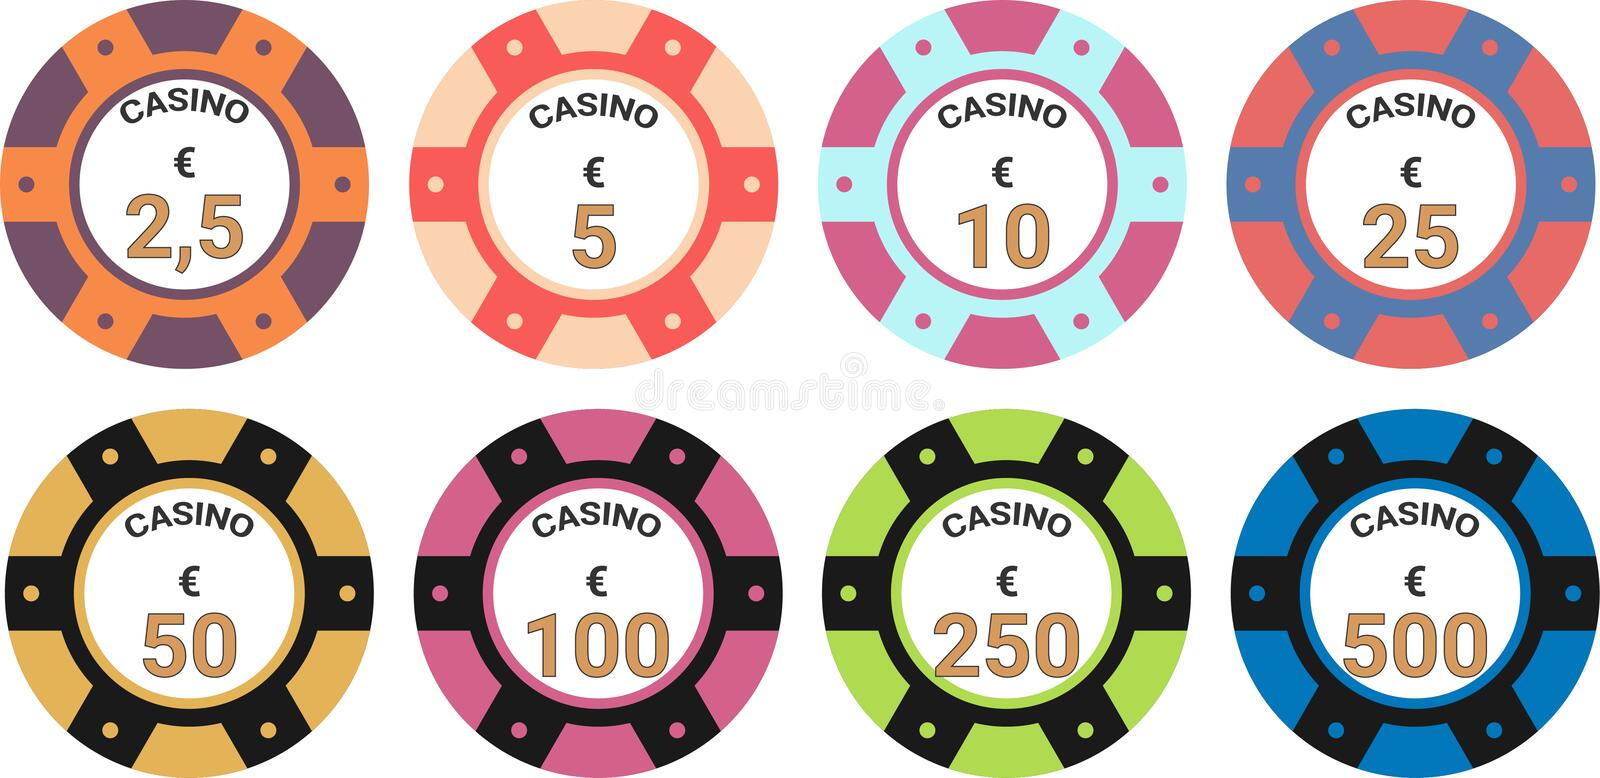 Euro d'illustration de vecteur d'ensemble de puces de casino illustration libre de droits